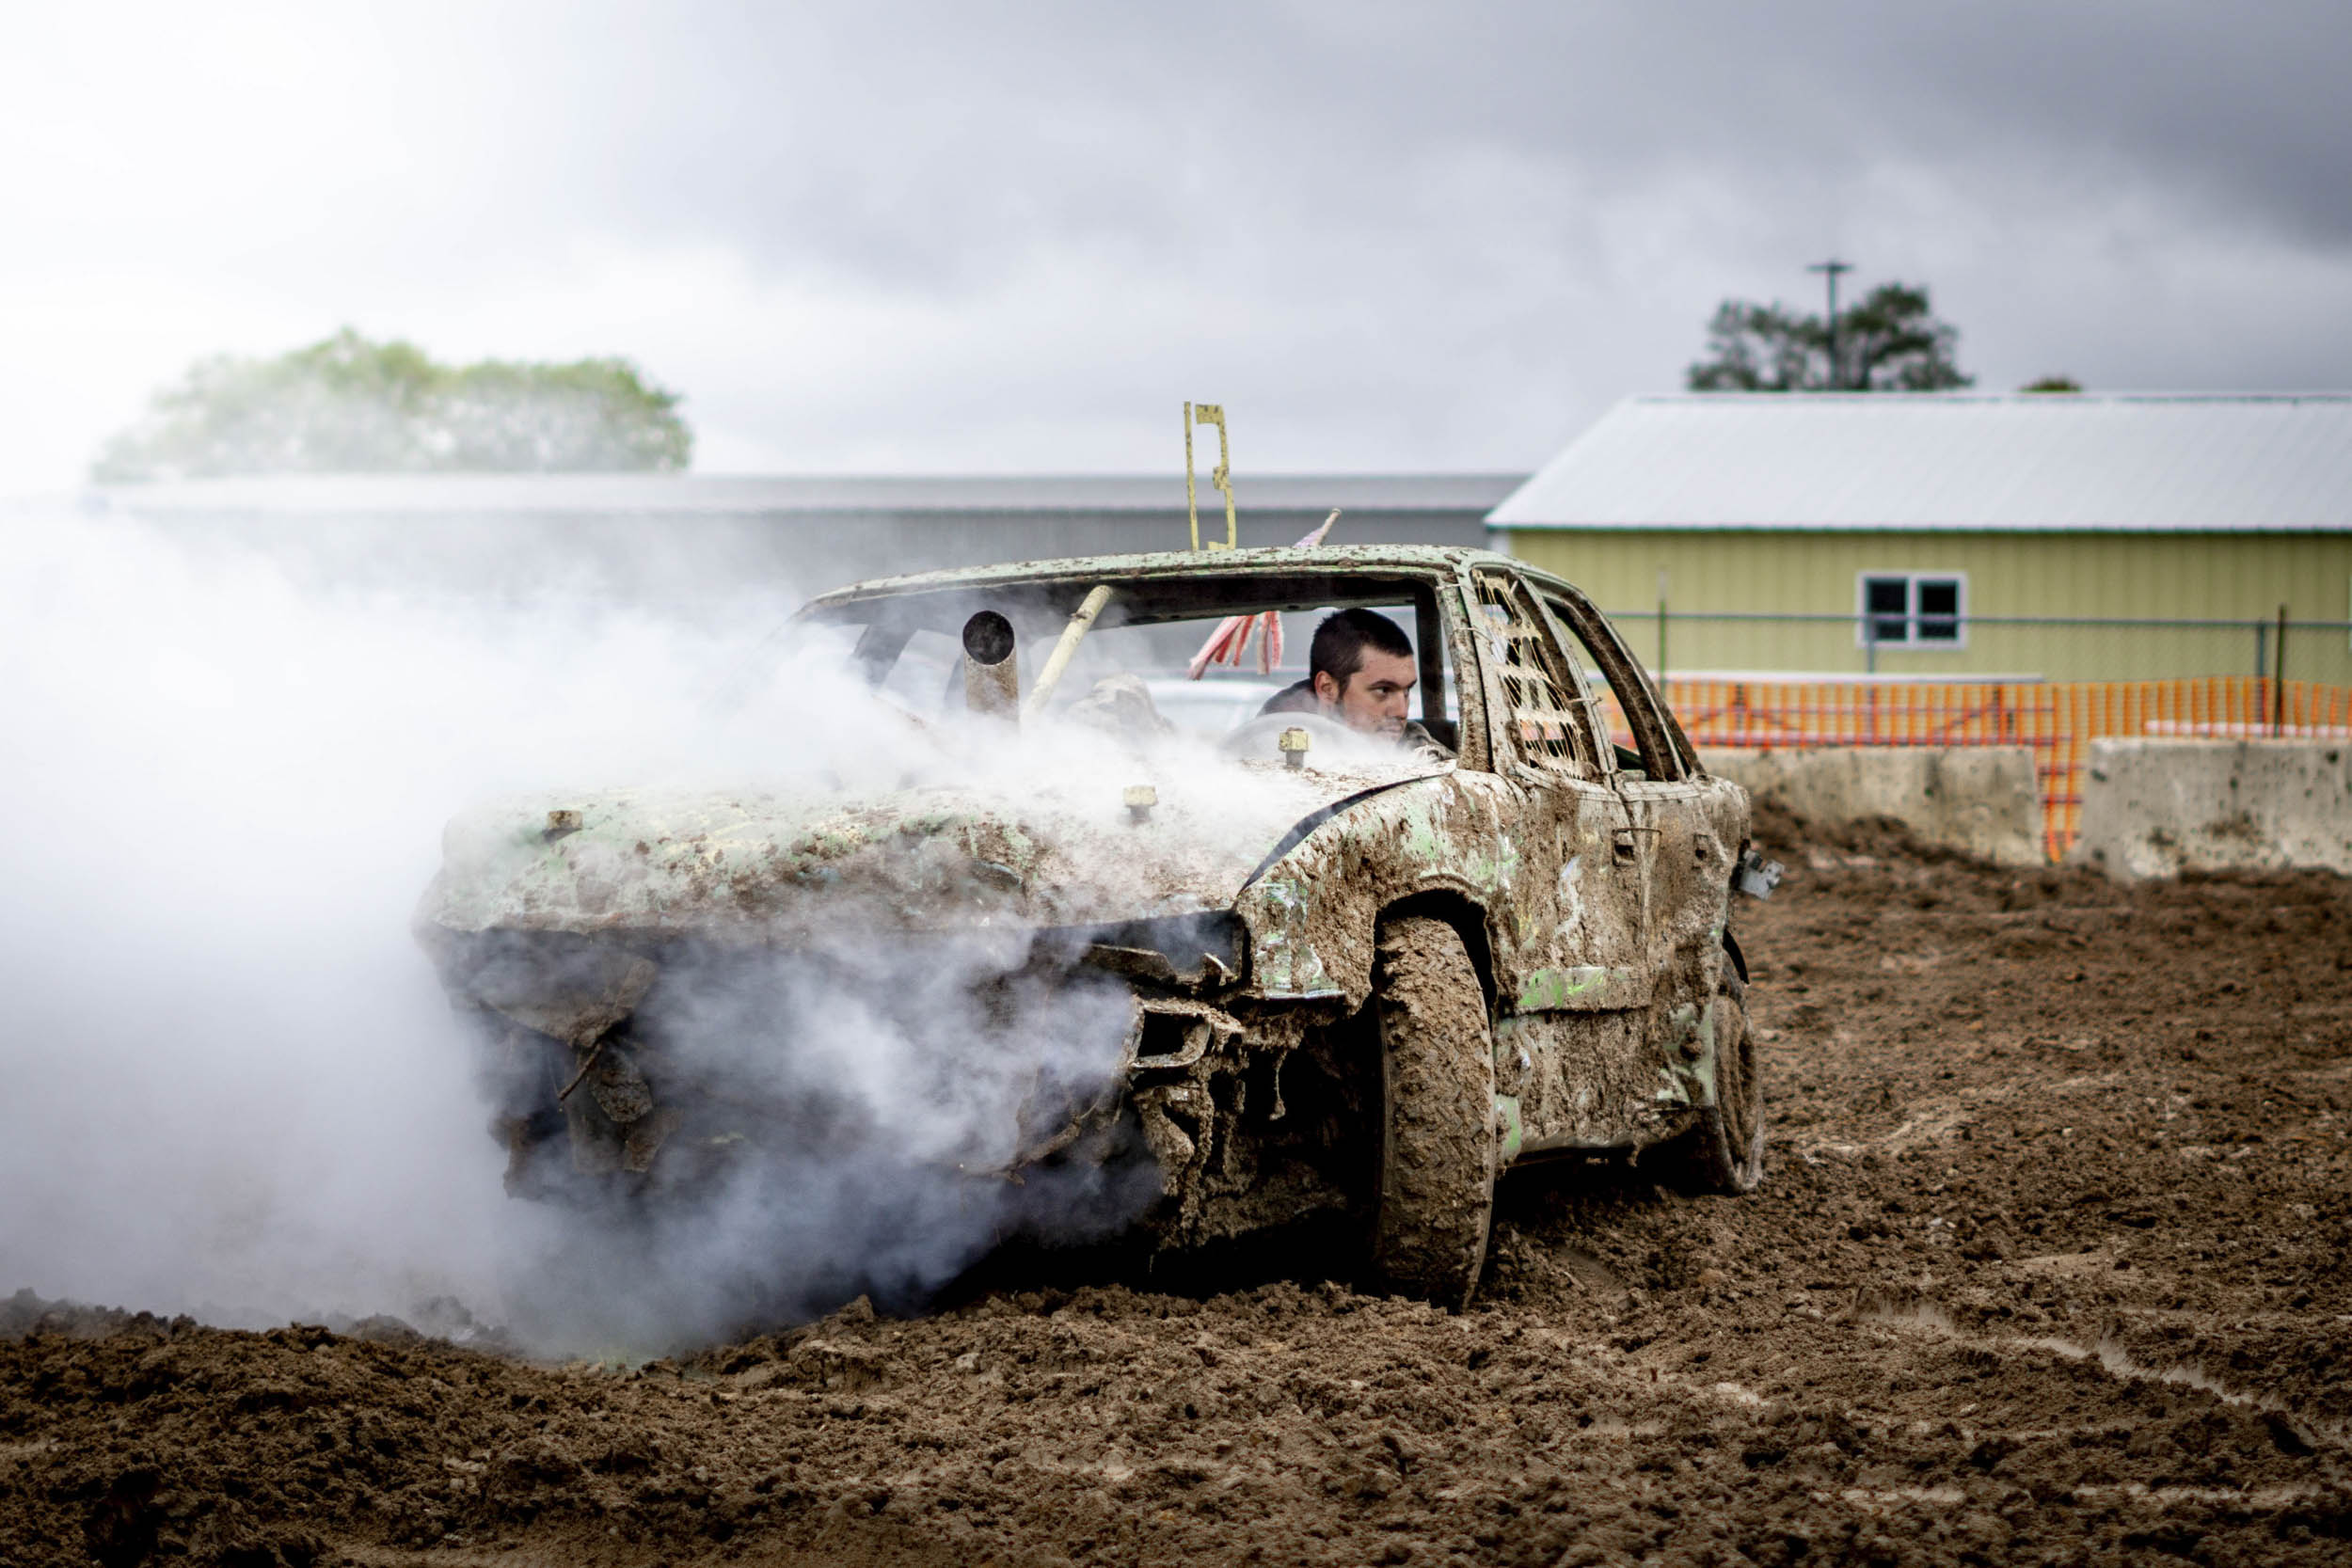 crashed demolition derby car smoking